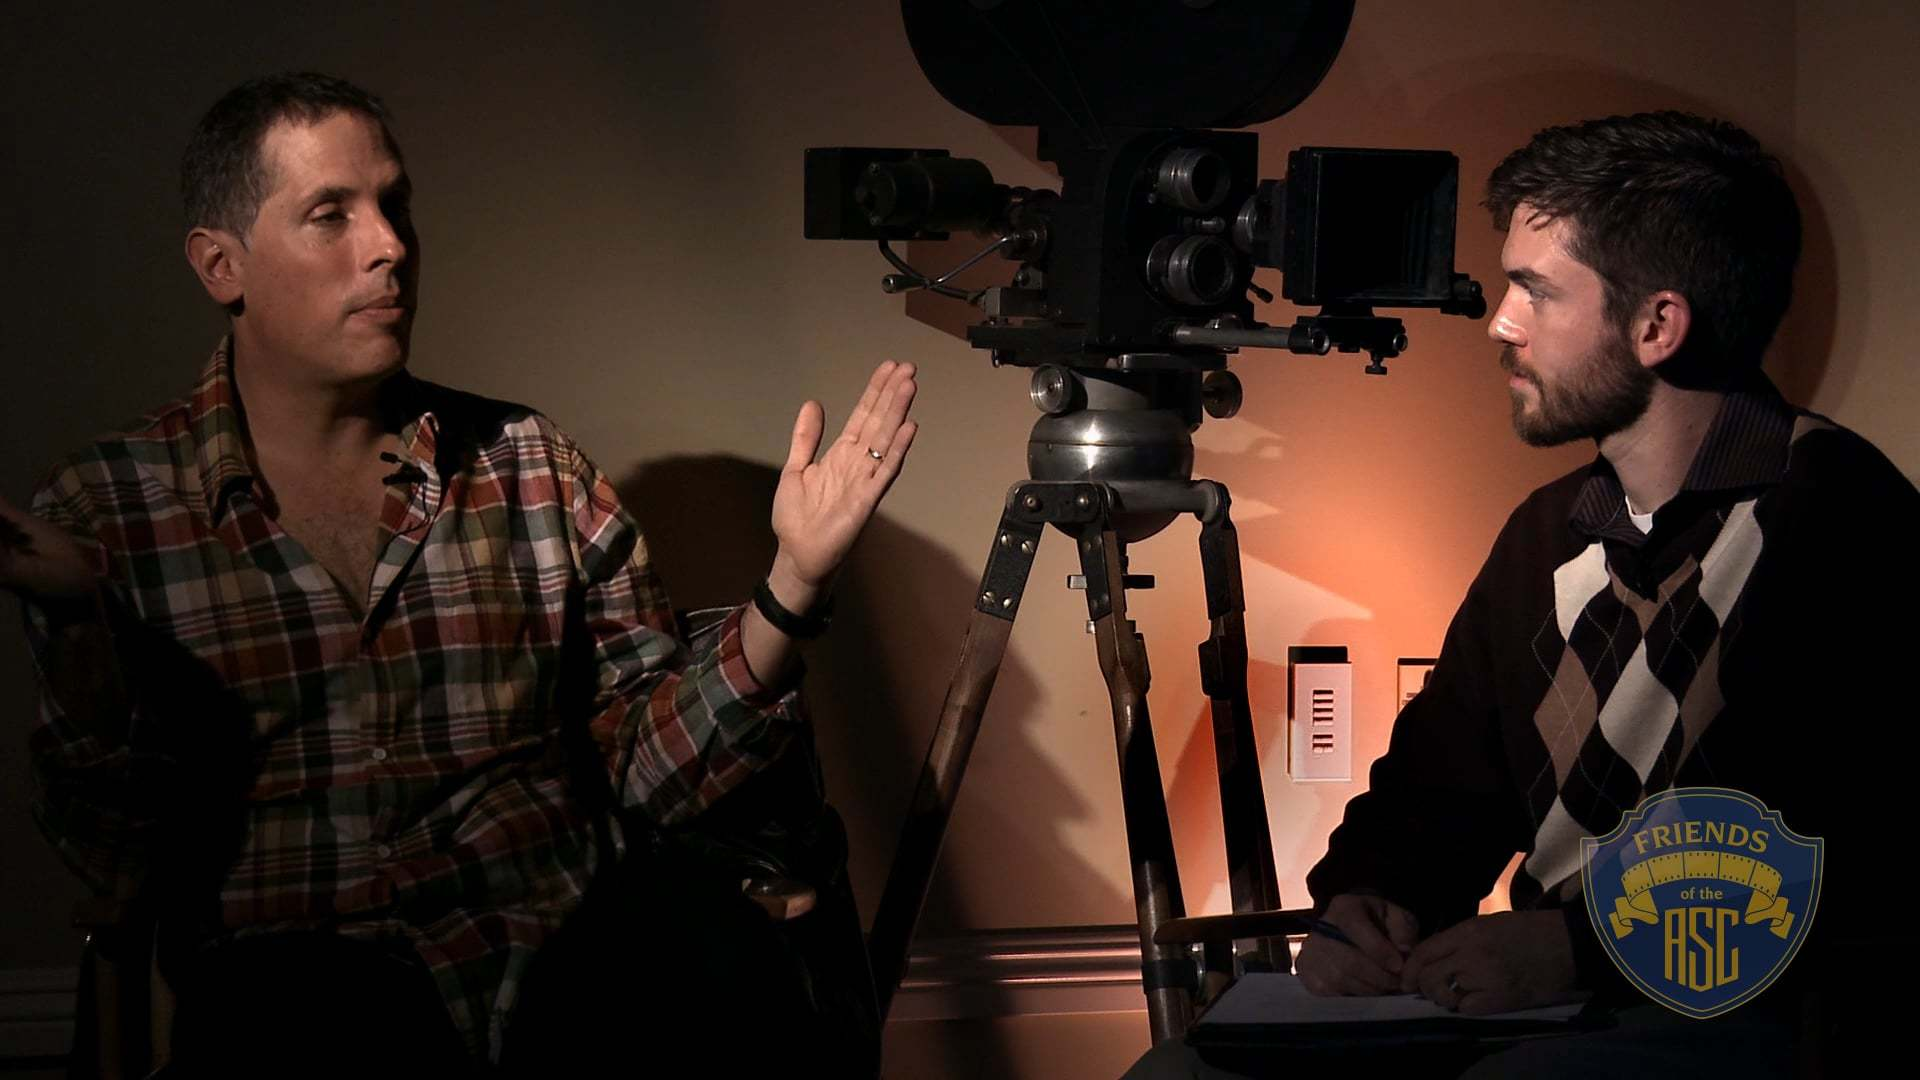 Asc Breakfast Club 2011 Video Collection The American Society Of Cinematographers